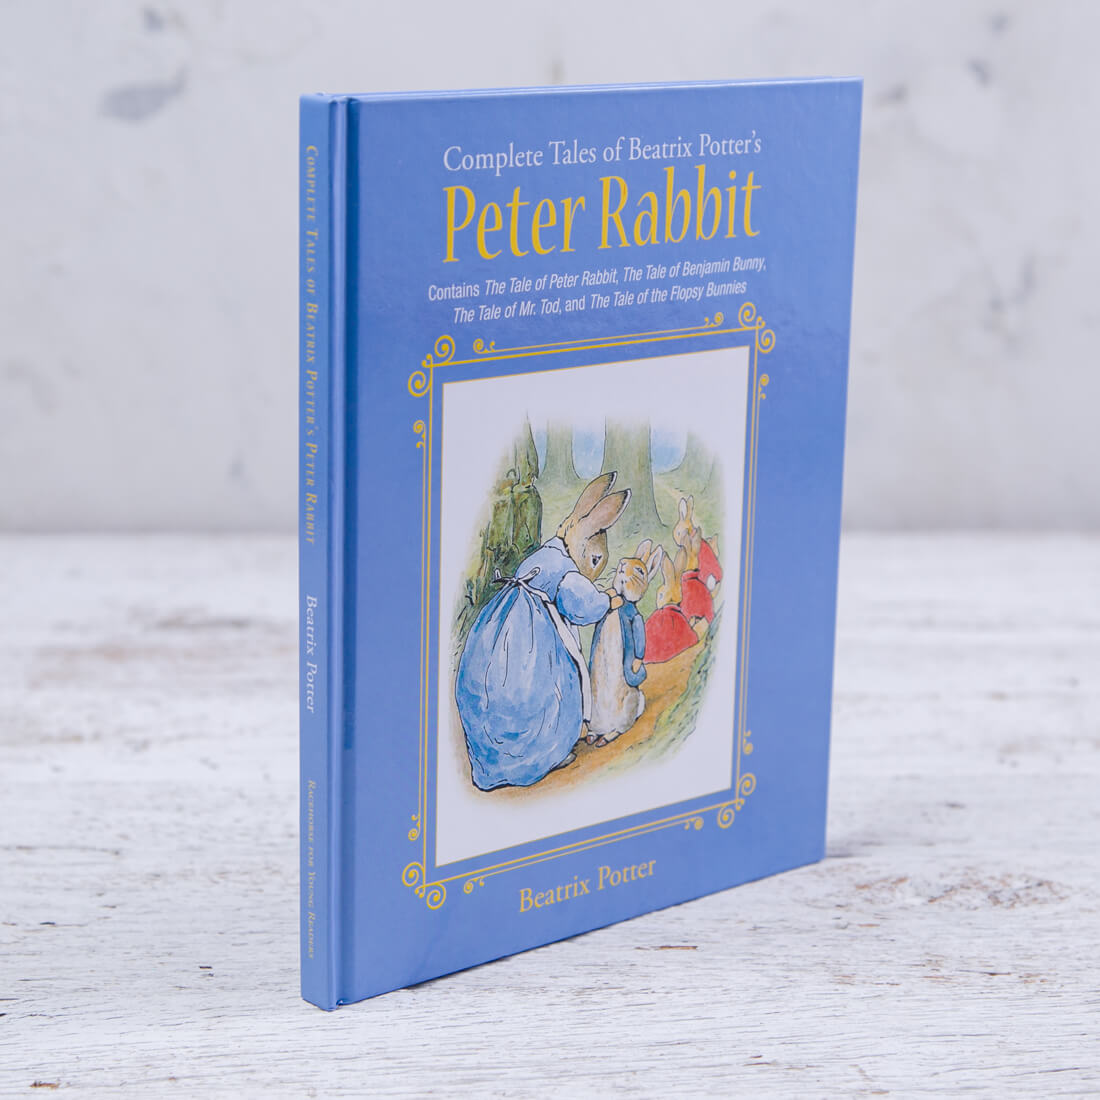 Complete Tales of Peter Rabbit Book